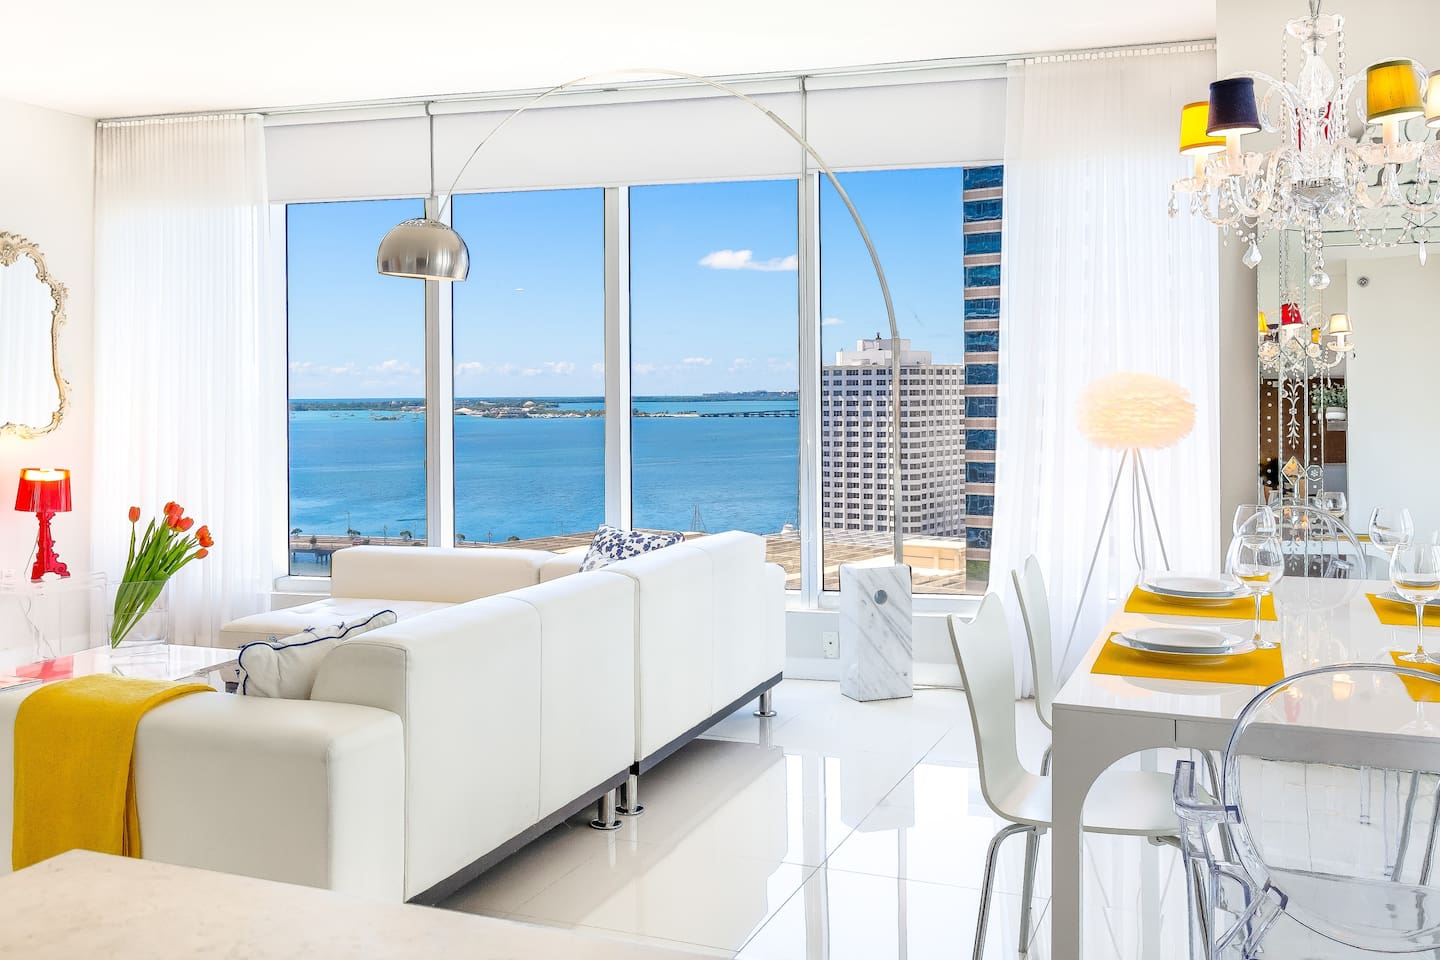 Floor to ceiling windows allow the views to invade your apartment.